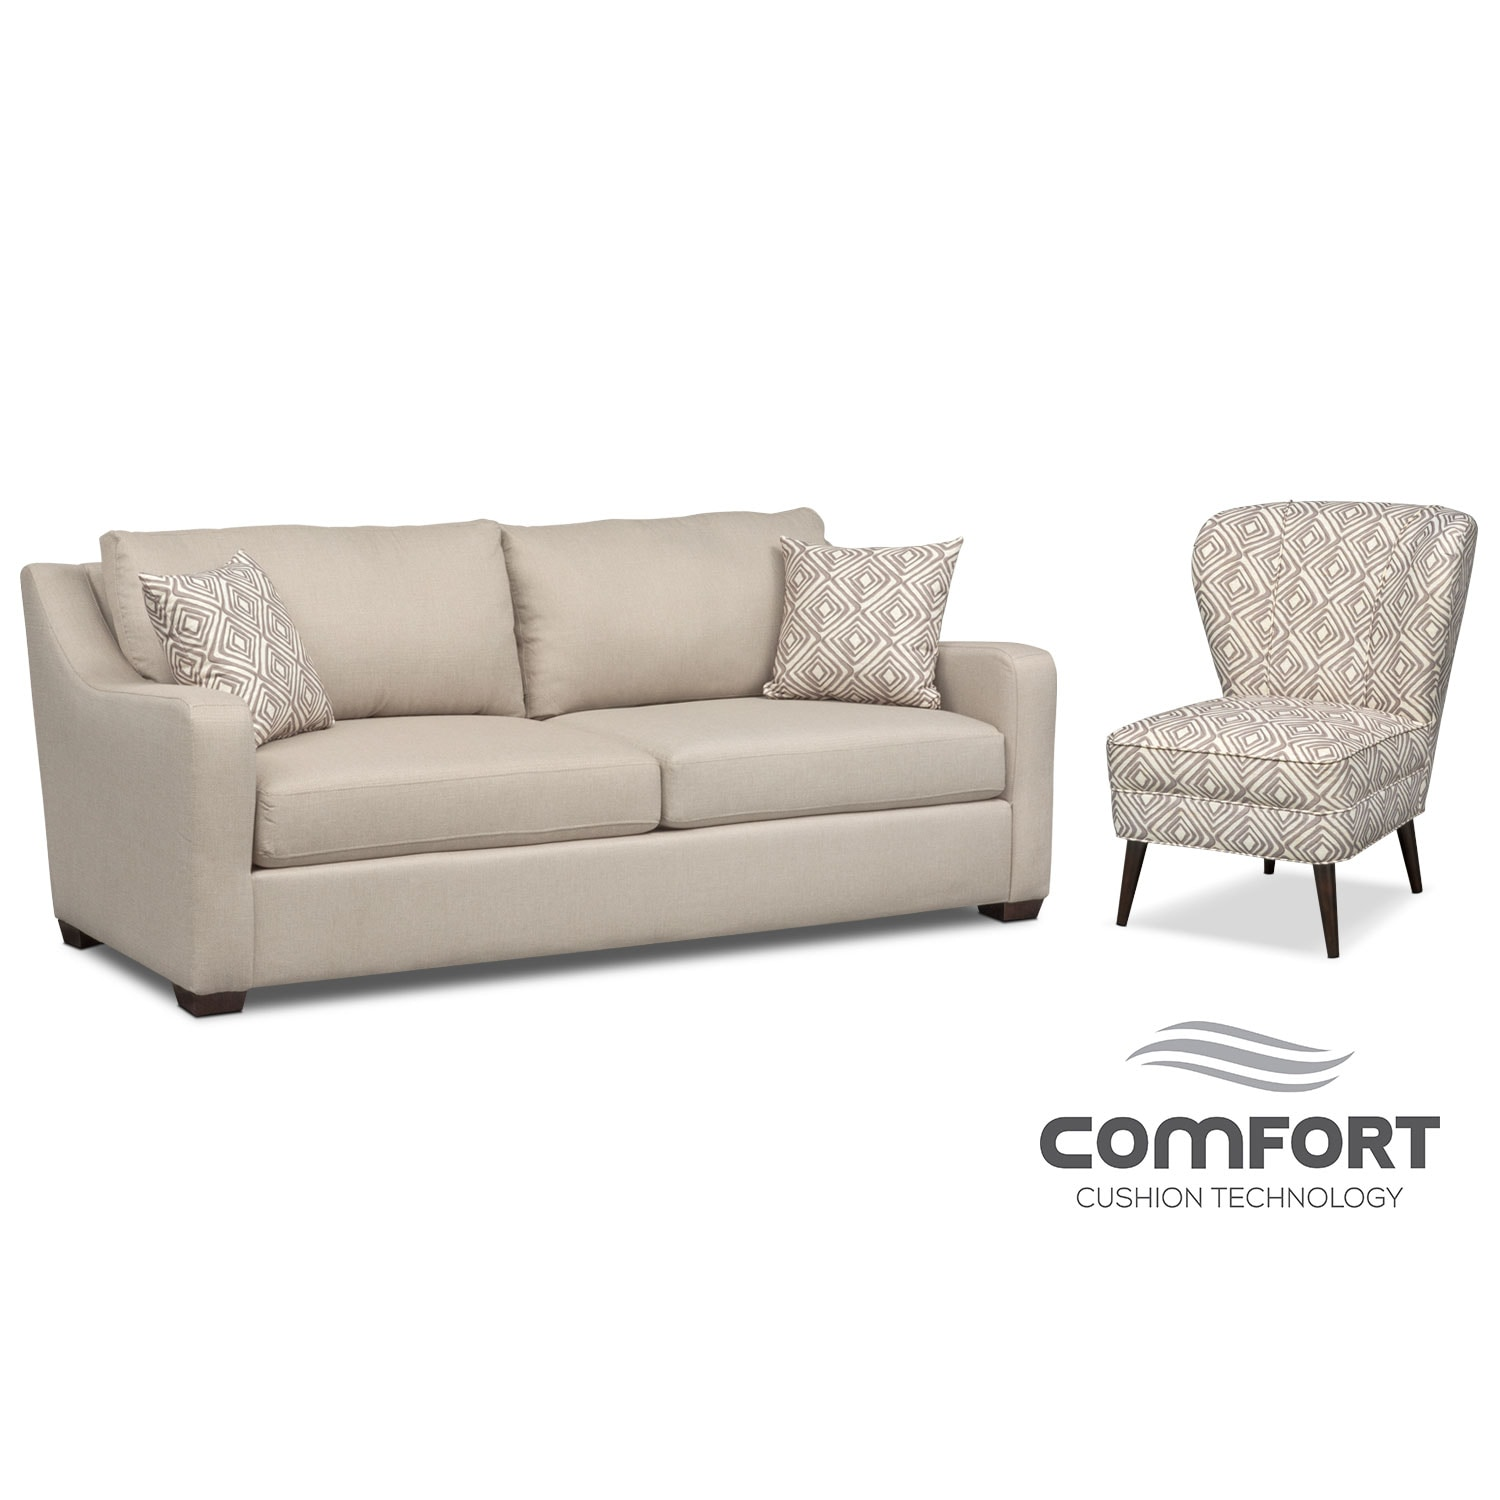 Living Room Furniture - Jules Comfort Sofa and Accent Chair Set - Cream